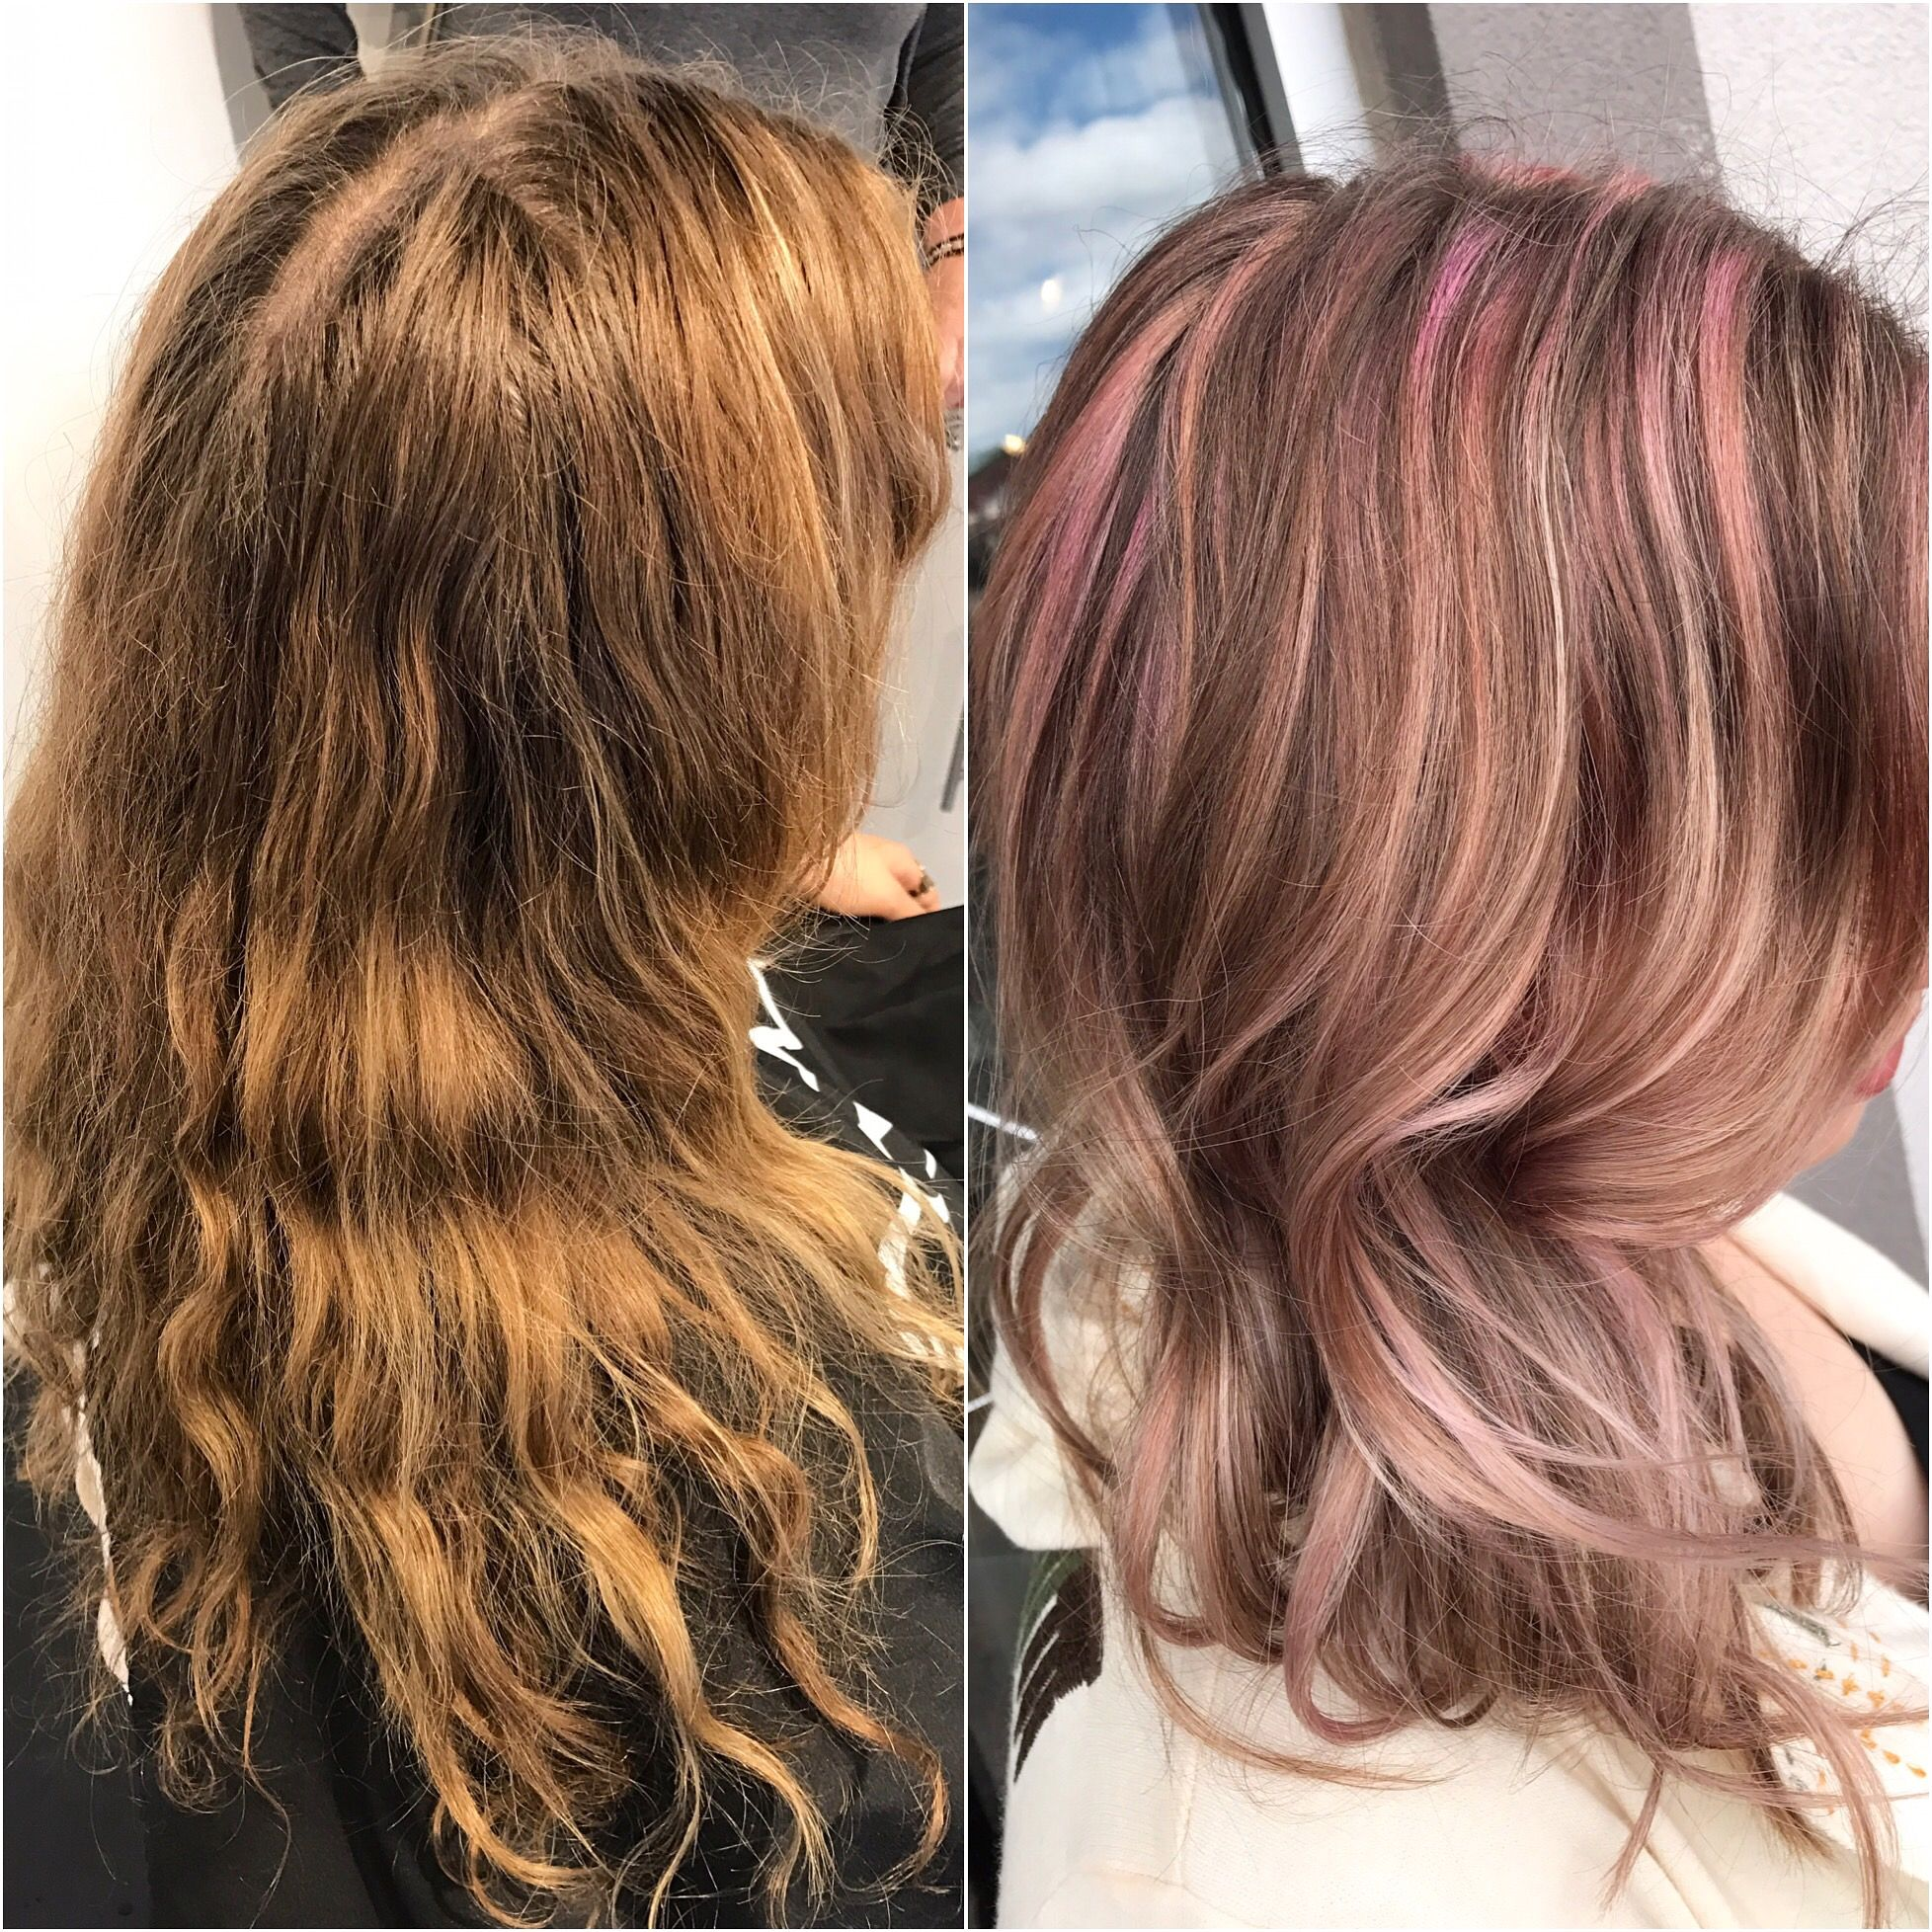 Before And After Pastel Pink Hair Hair Transformation Hair Transformation Pastel Pink Hair Pink Hair